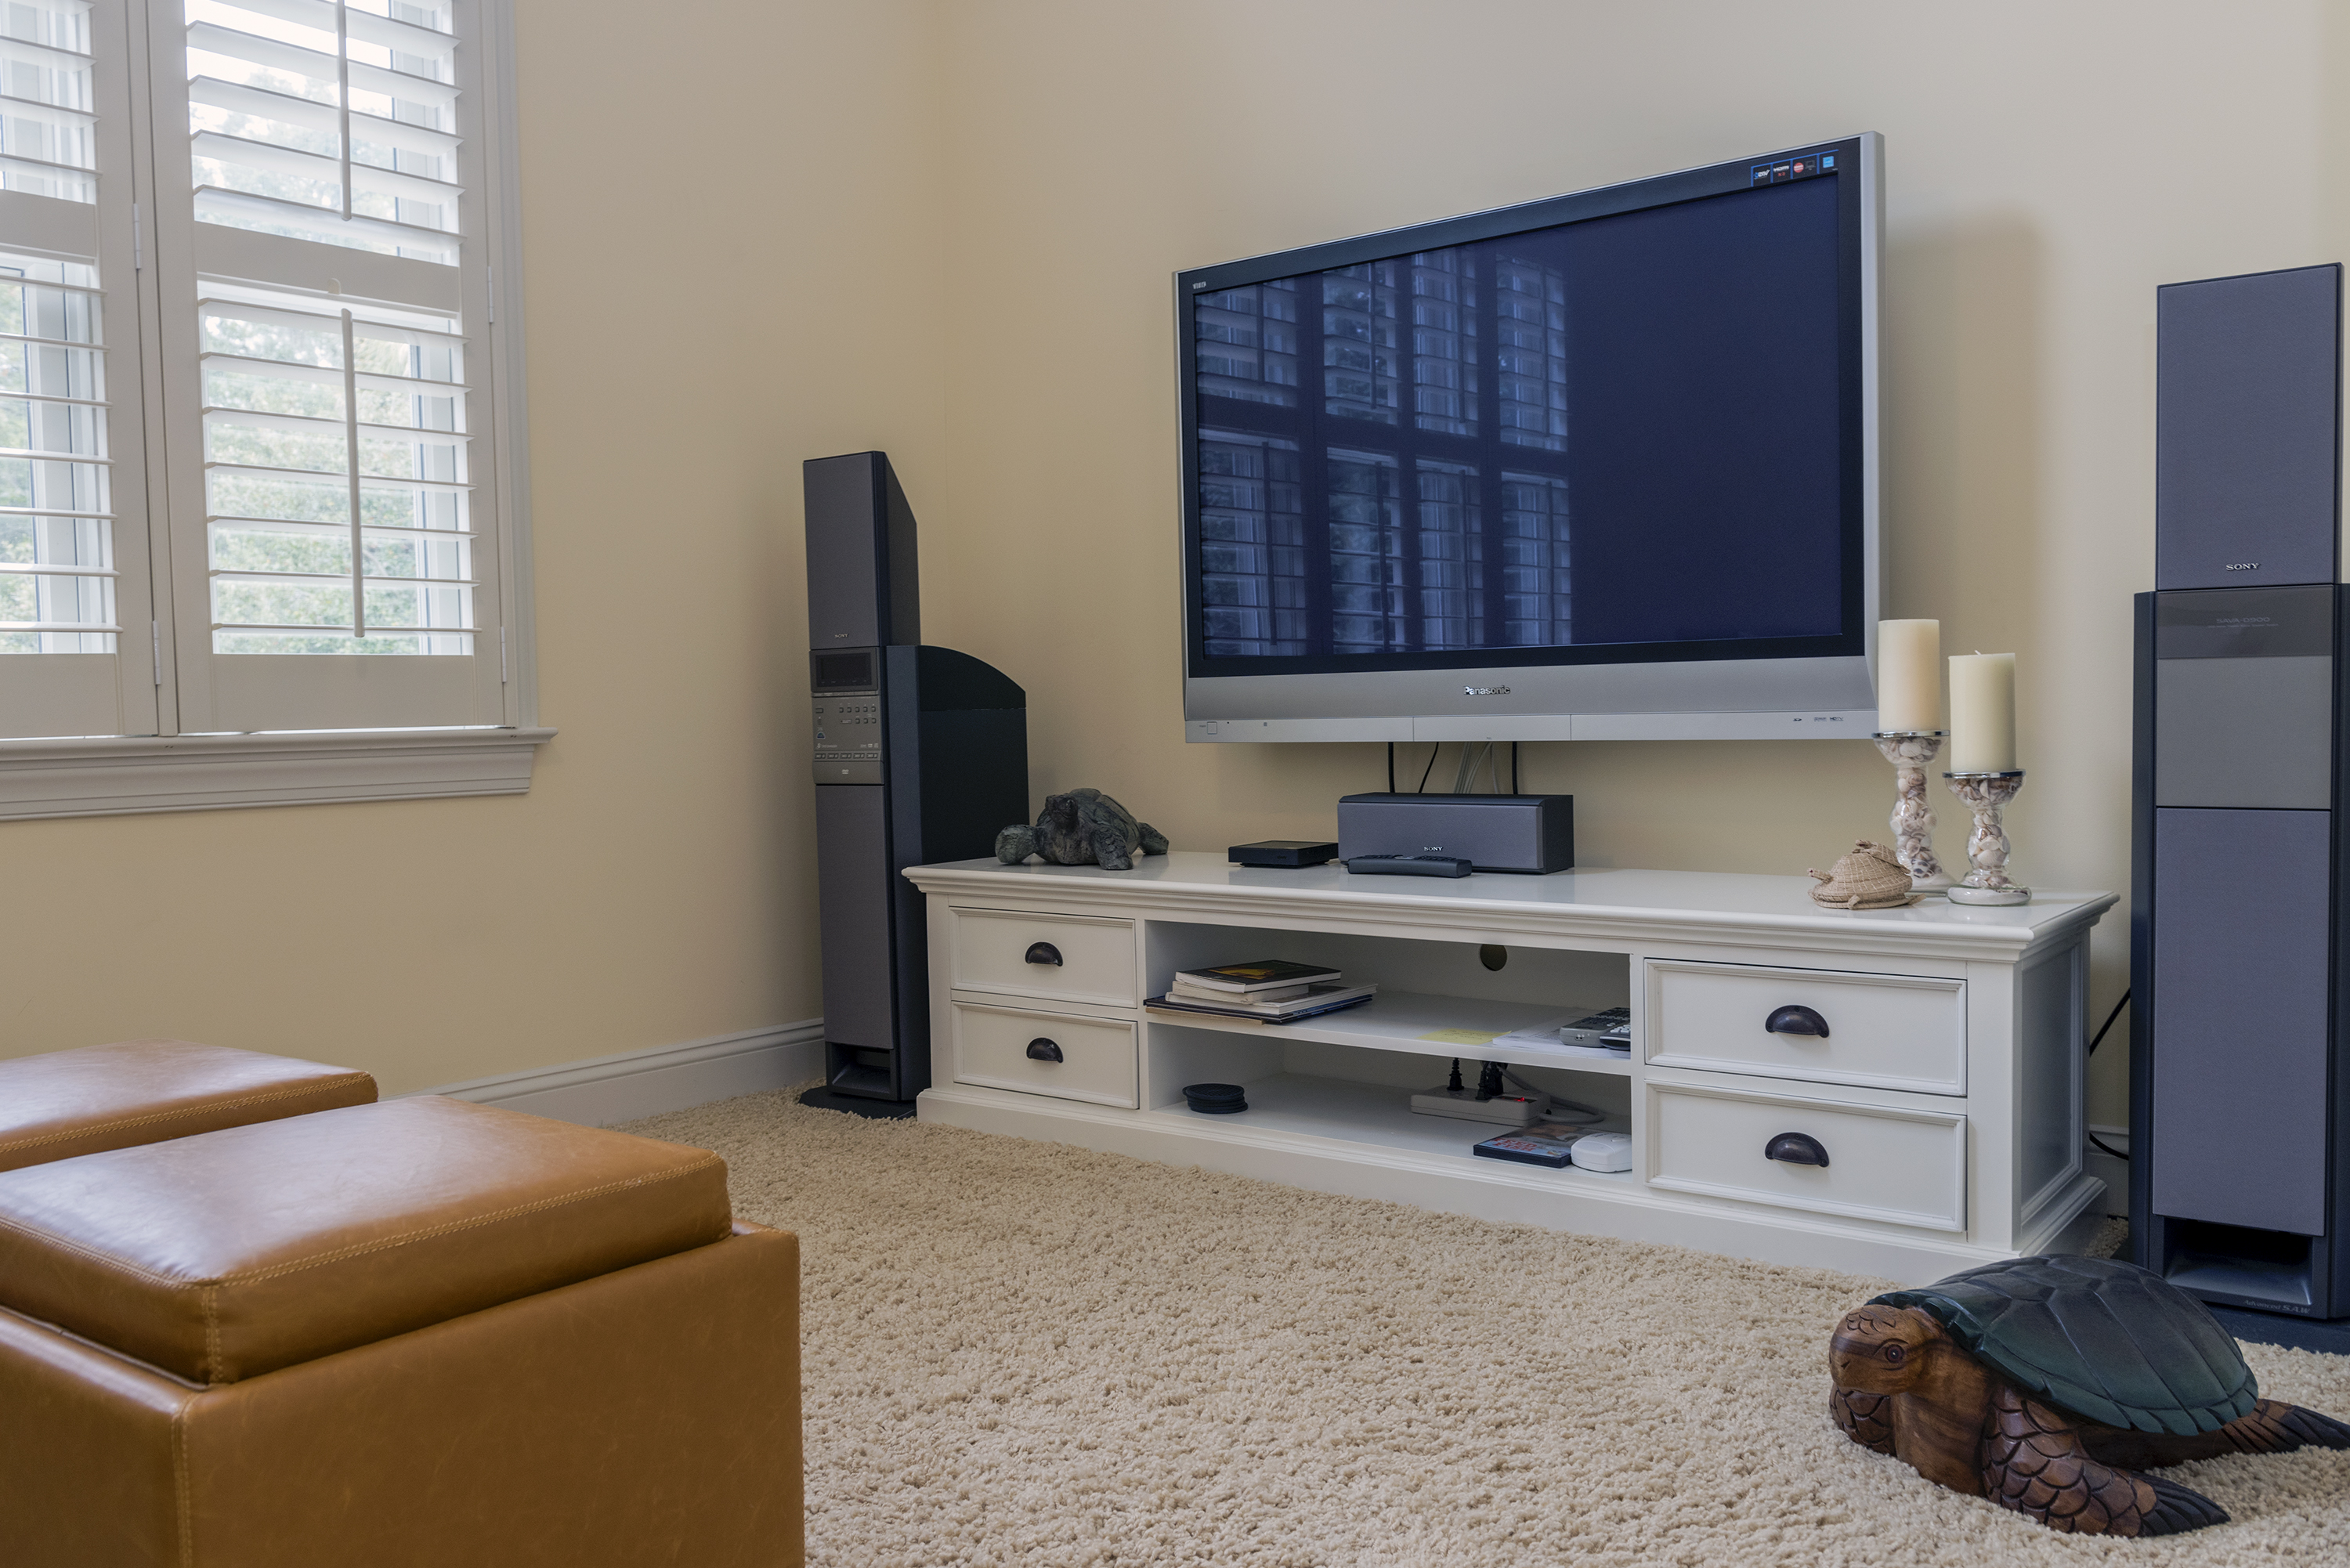 There is a den on the second floor with HDTV/surround sound, perfect for rainy afternoons.